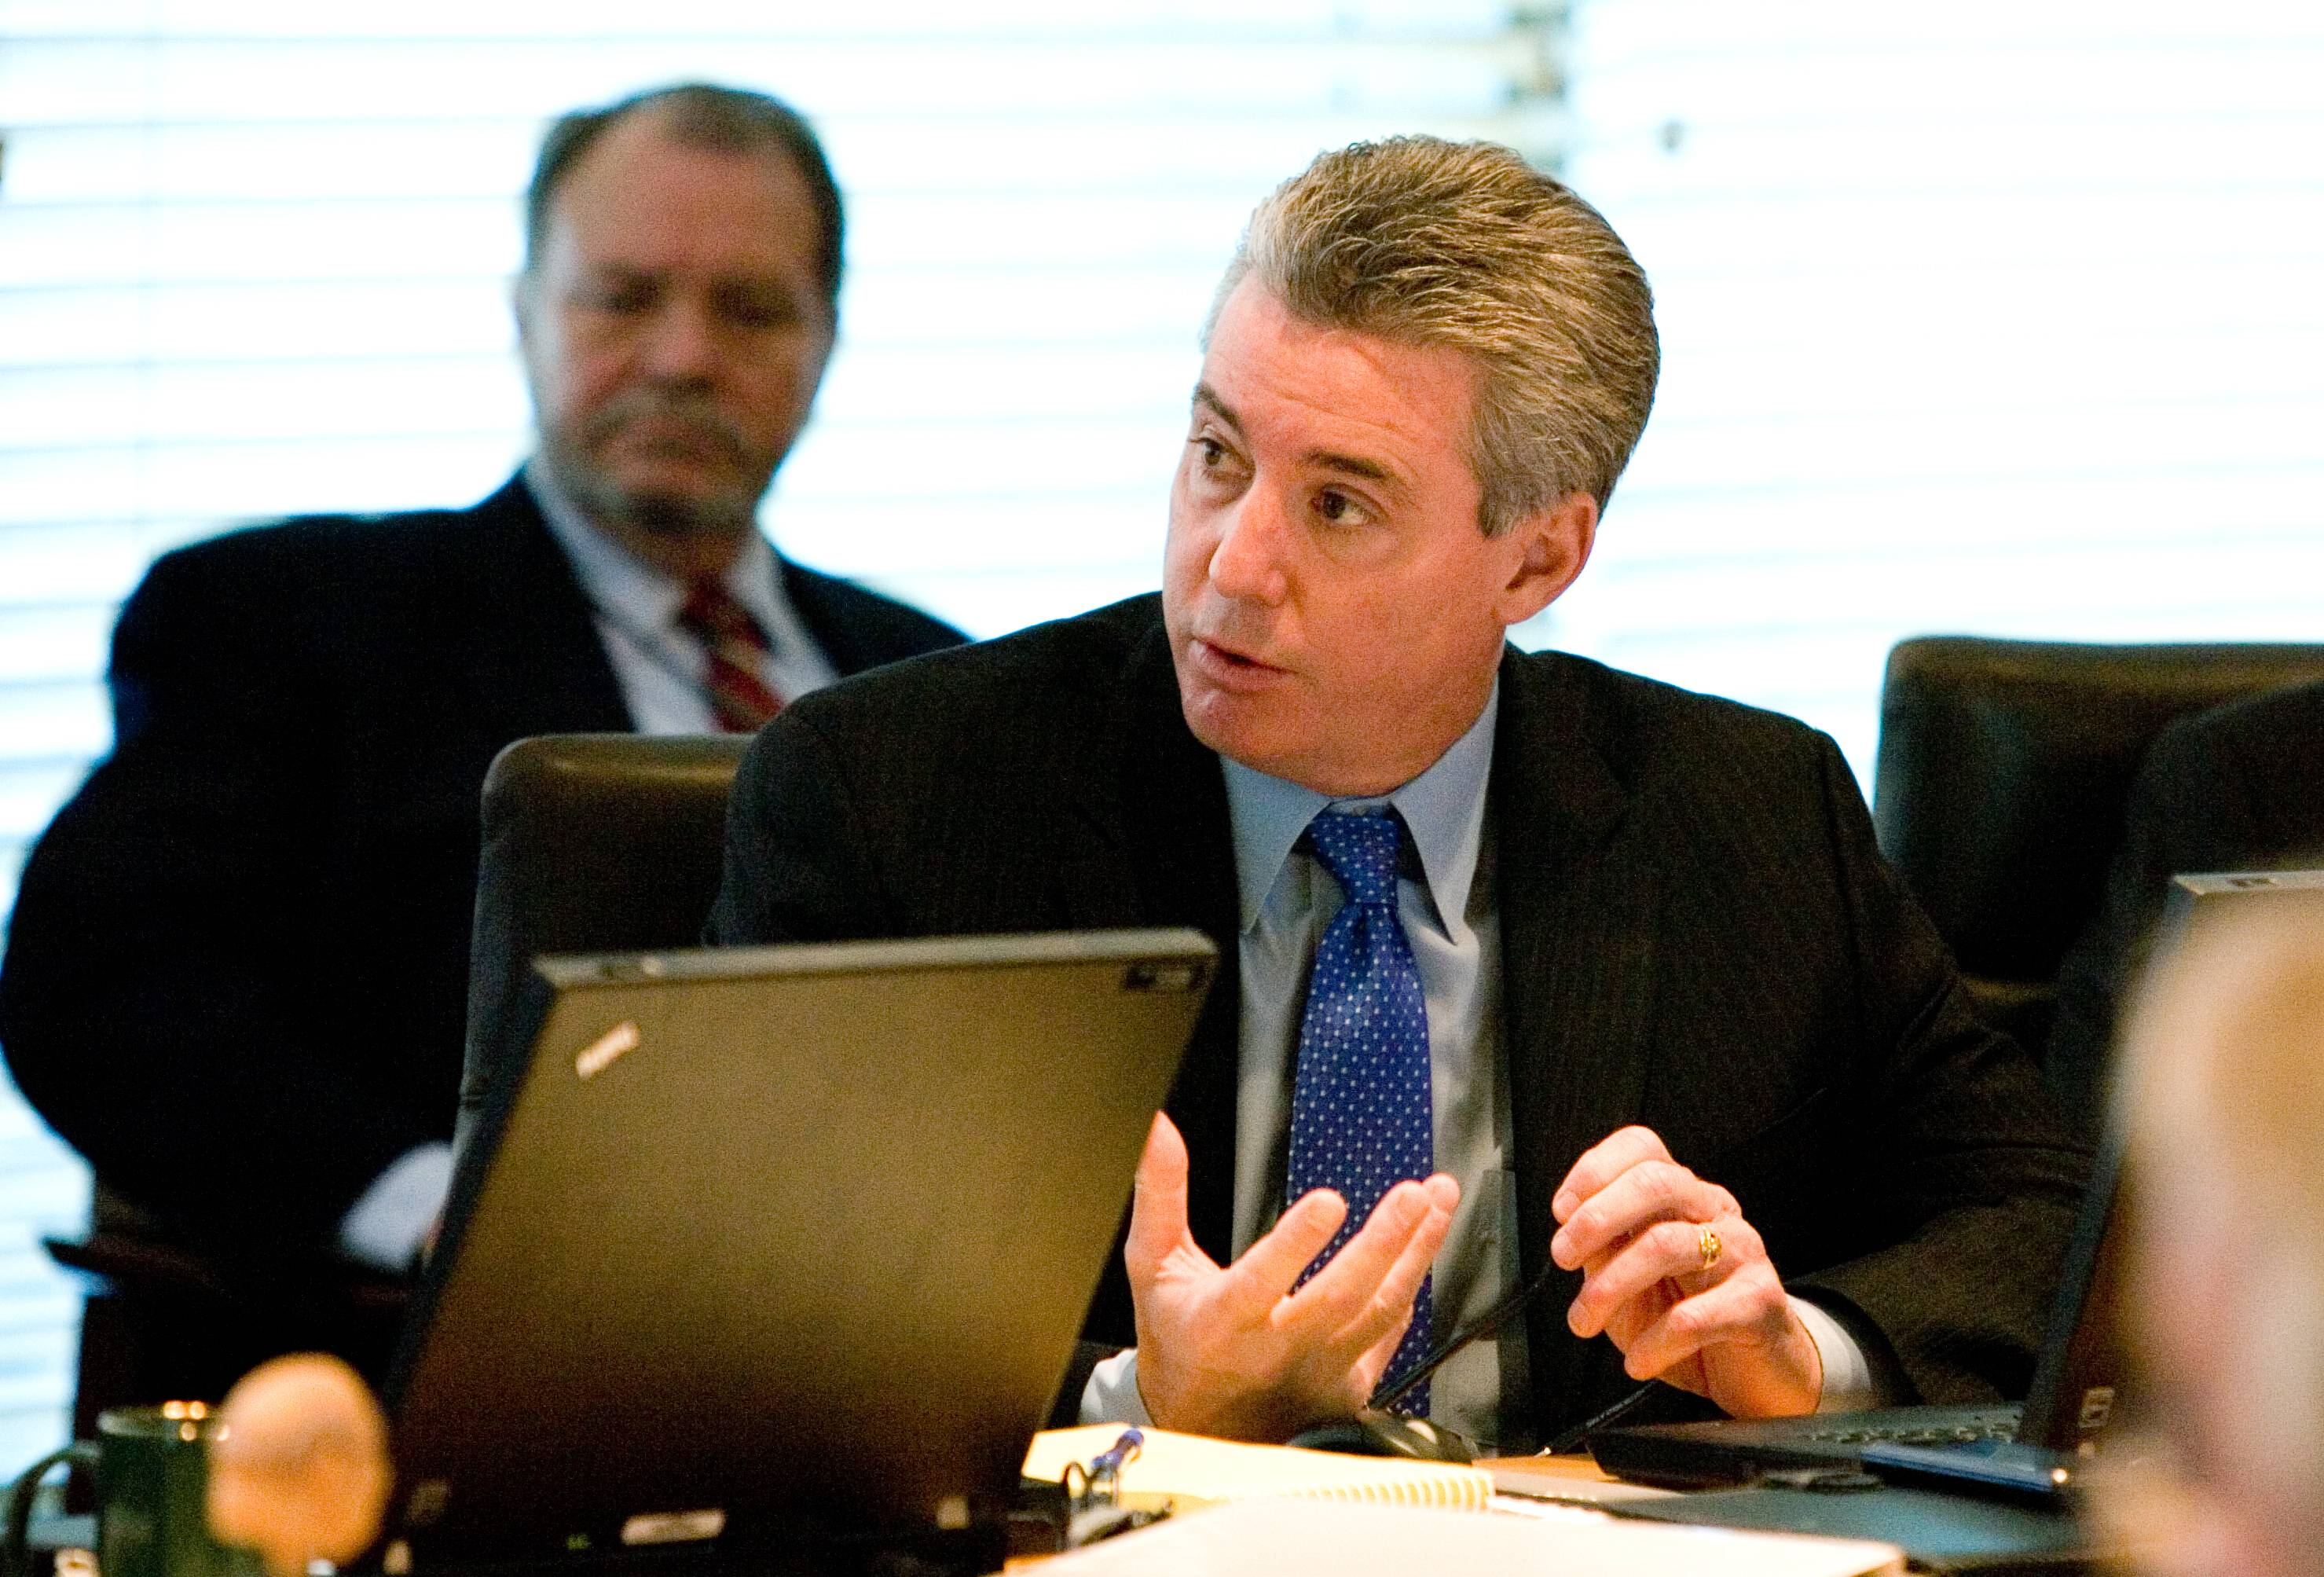 Daily Herald File Photo / Daniel White dwhite@dailyherald.com James Sweeney, president of a union whose members get jobs from tollway contracts, was named to the Illinois Tollway board.